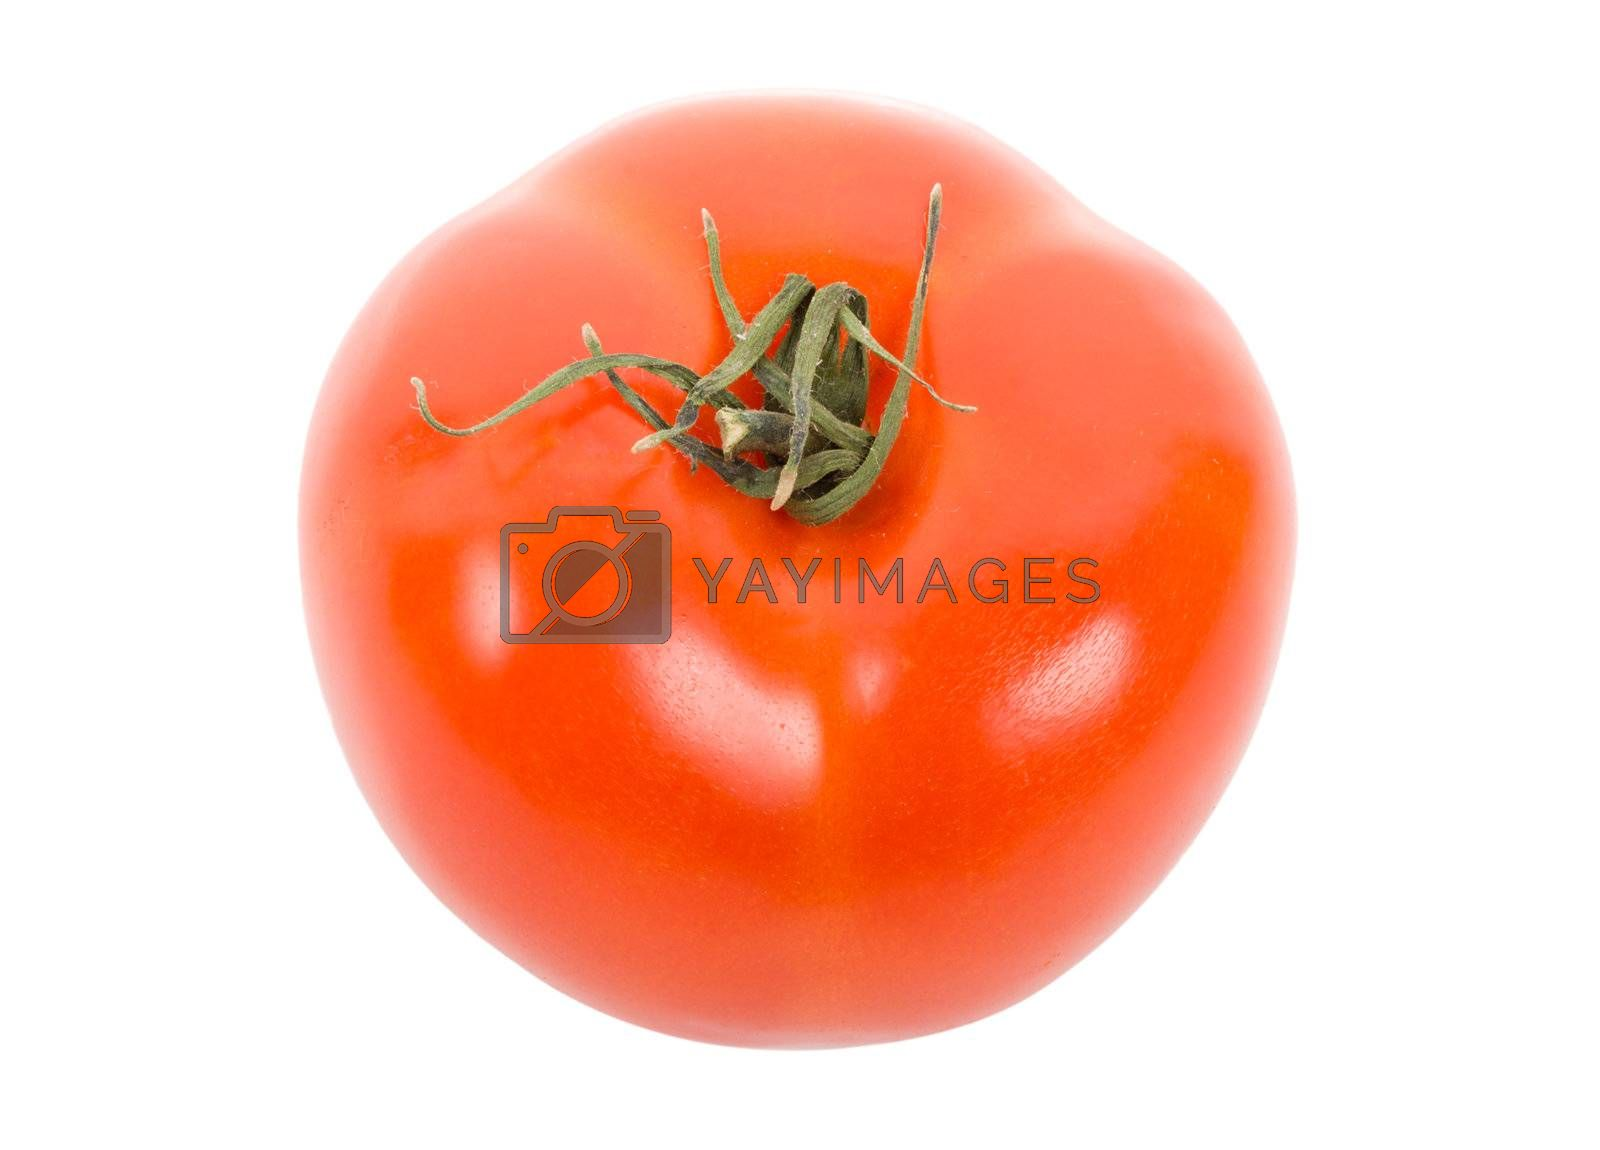 tomato view from above by Alekcey